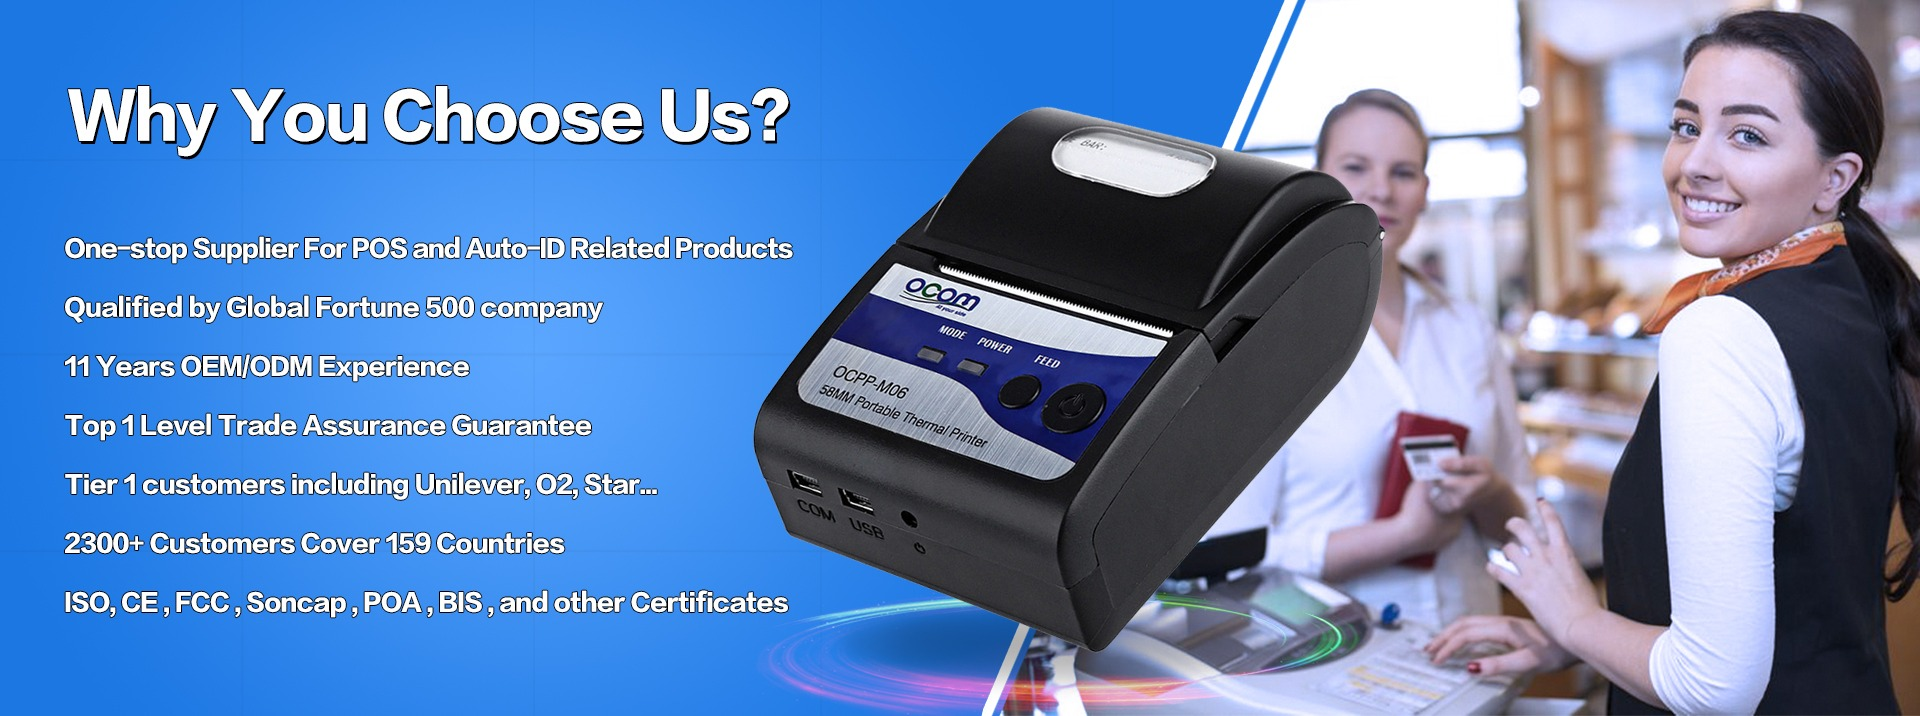 Shenzhen Ocom Technologies Limited Thermal Printer Barcode Mini Bluetooth M58 Ll Main Categories